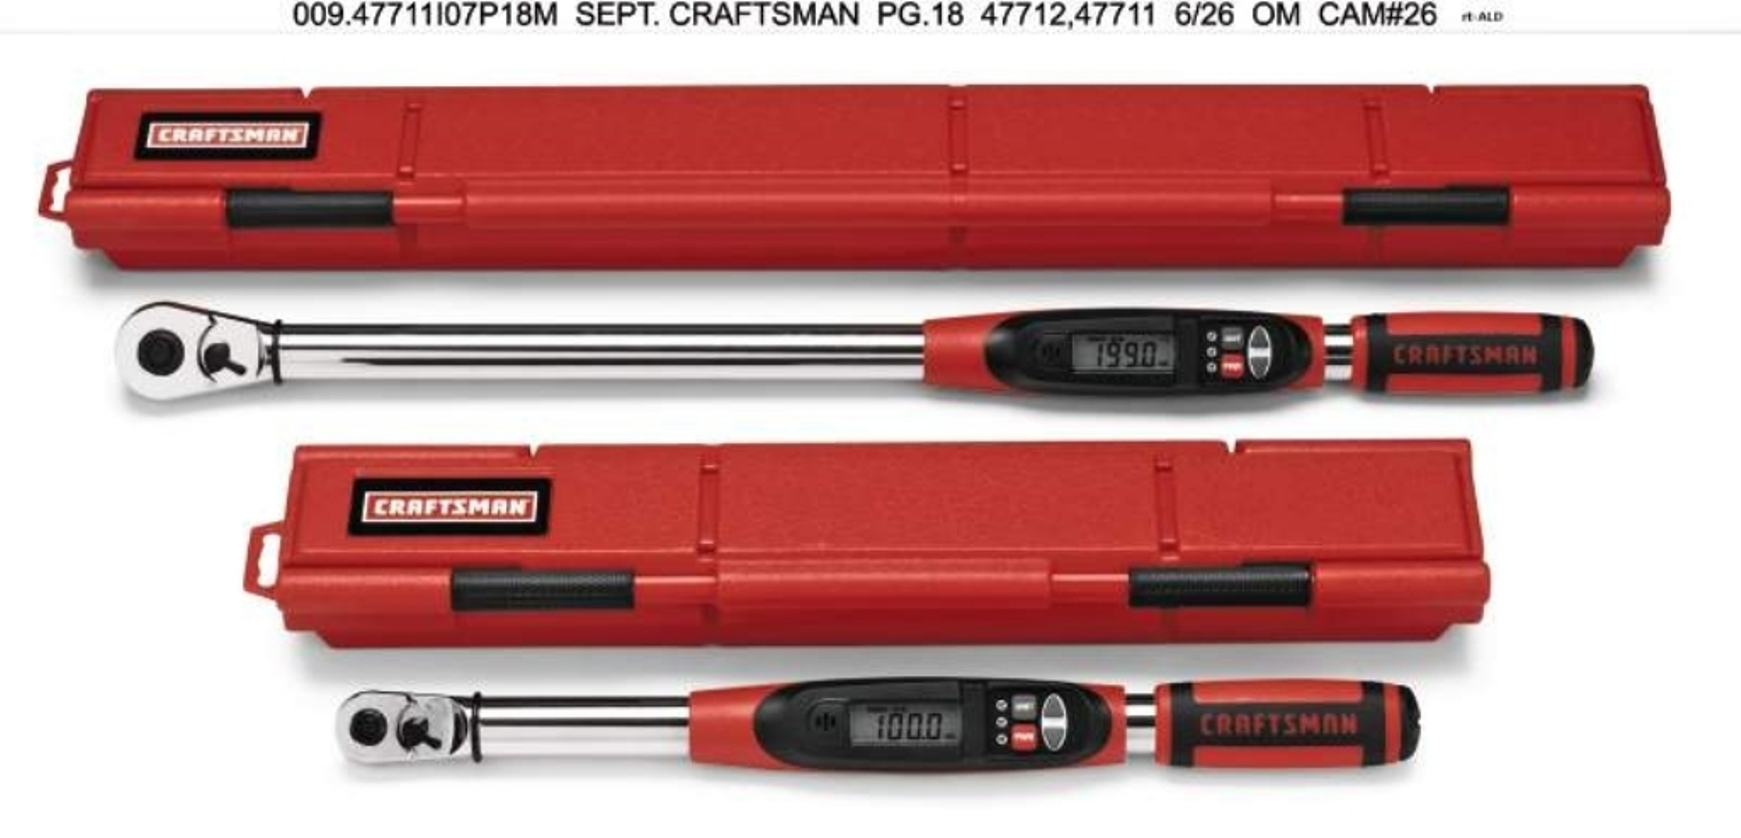 Craftsman Electronic Torque Wrench, 3/8 in. Drive